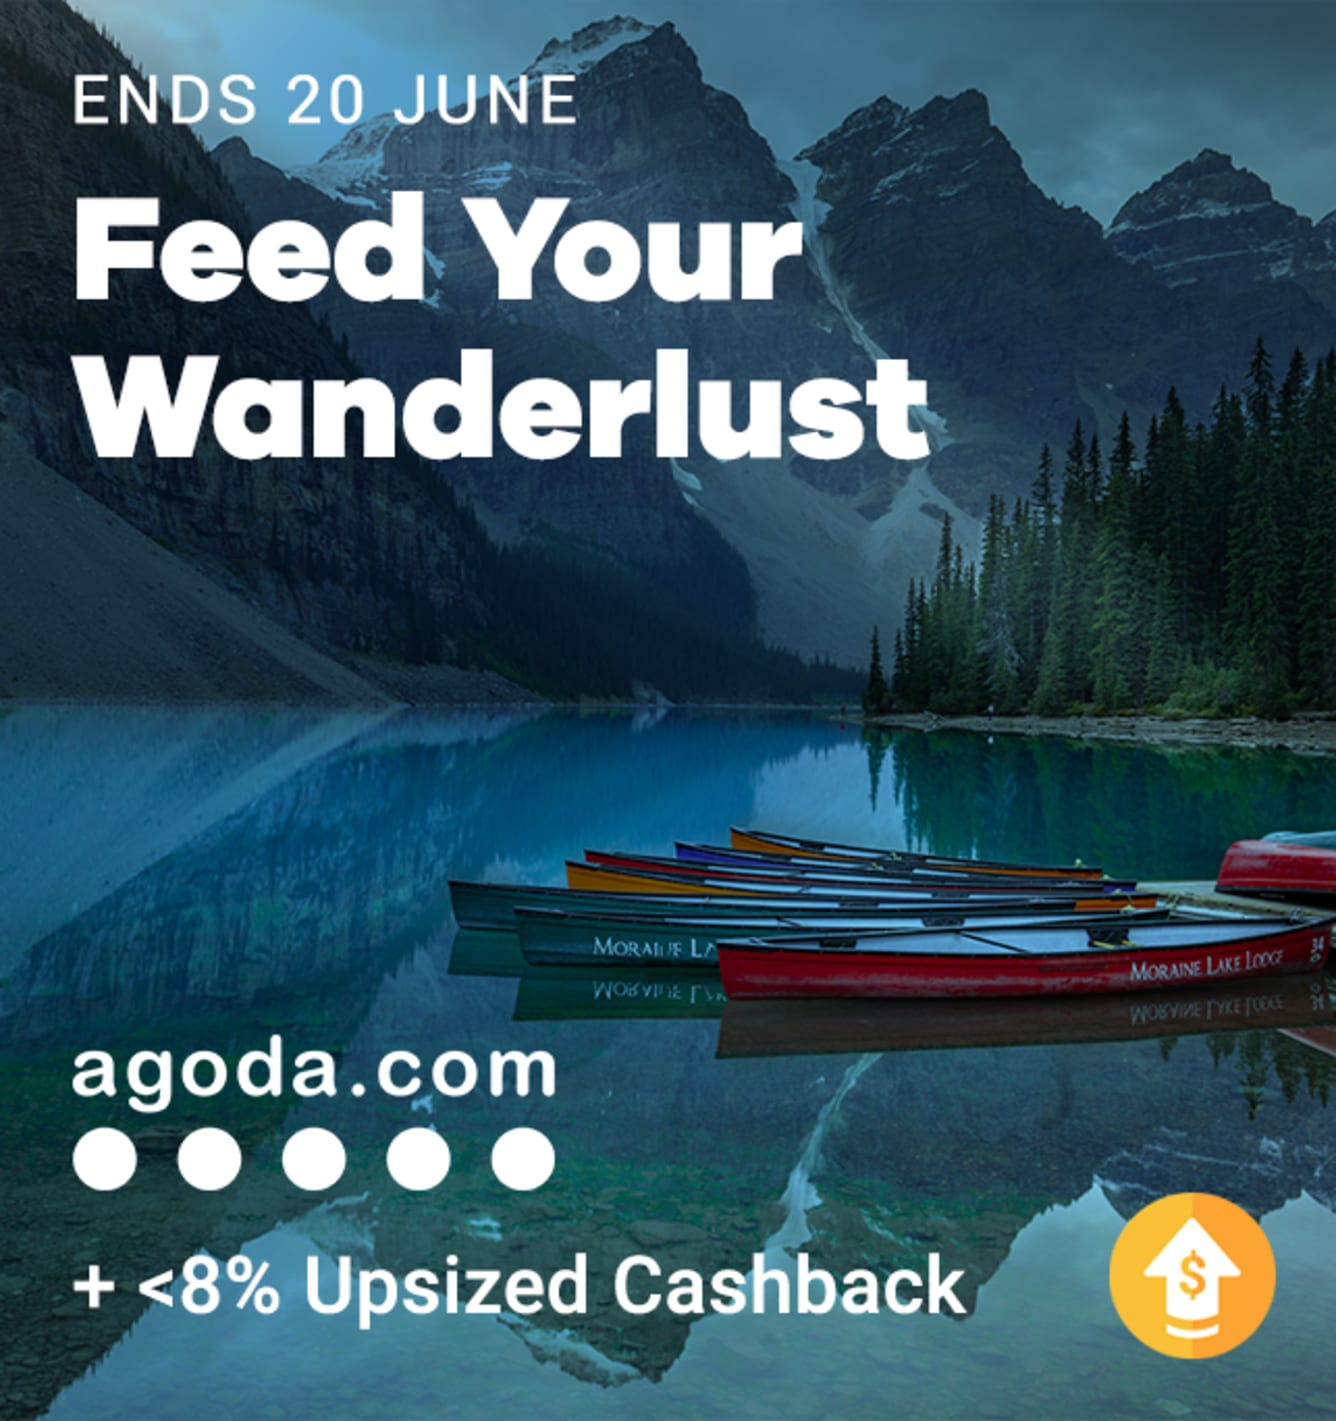 Agoda Up to 8% Upsized Cashback